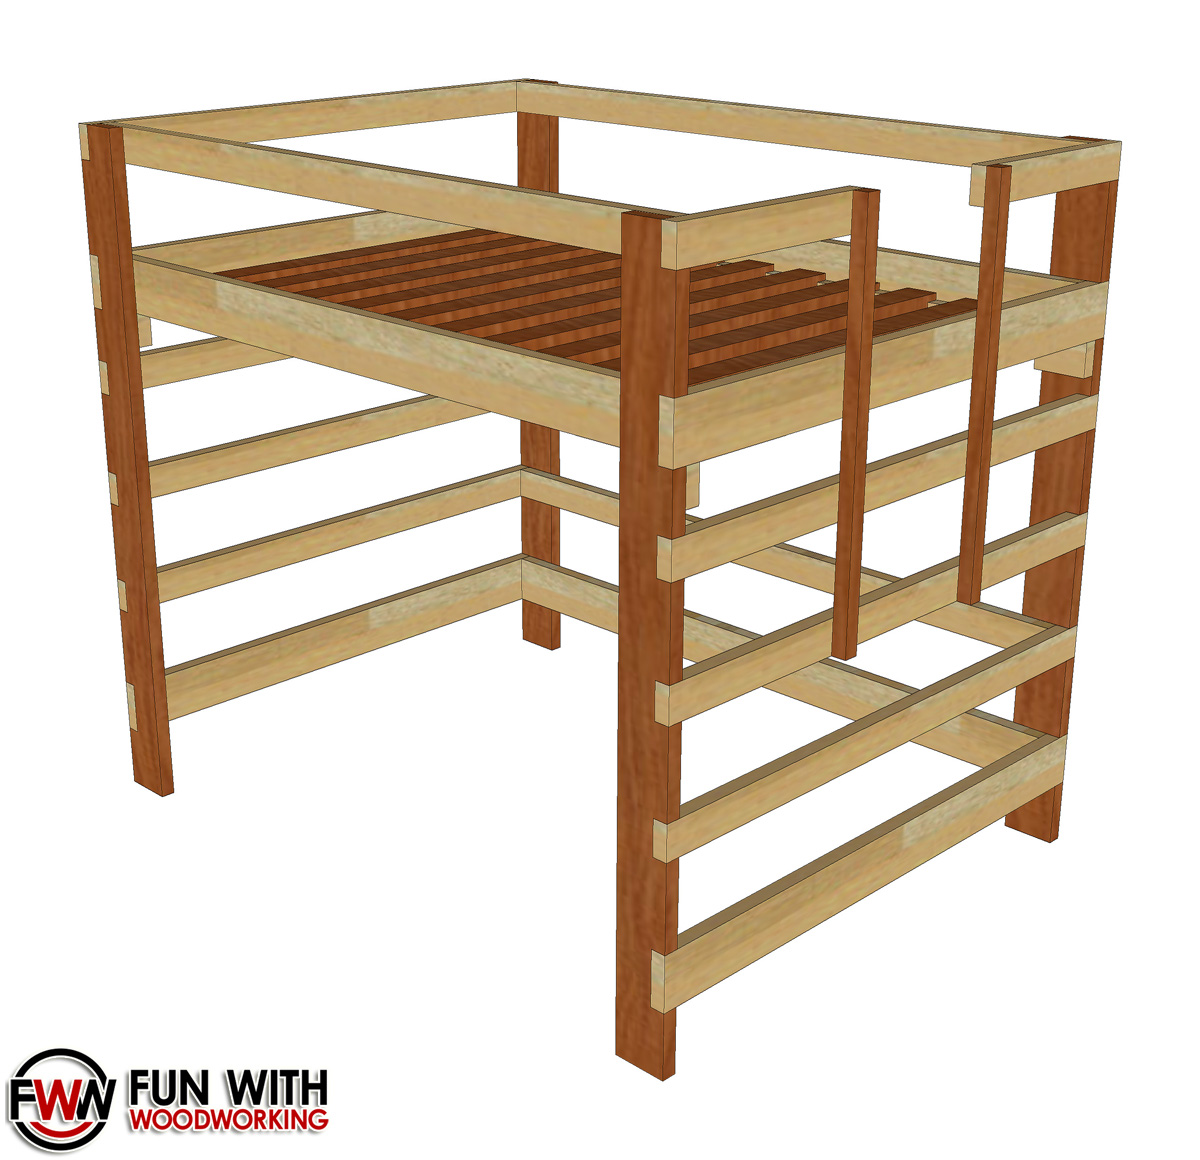 Wood Loft Twin Size Loft Bed Full Plans Fun With Woodworking